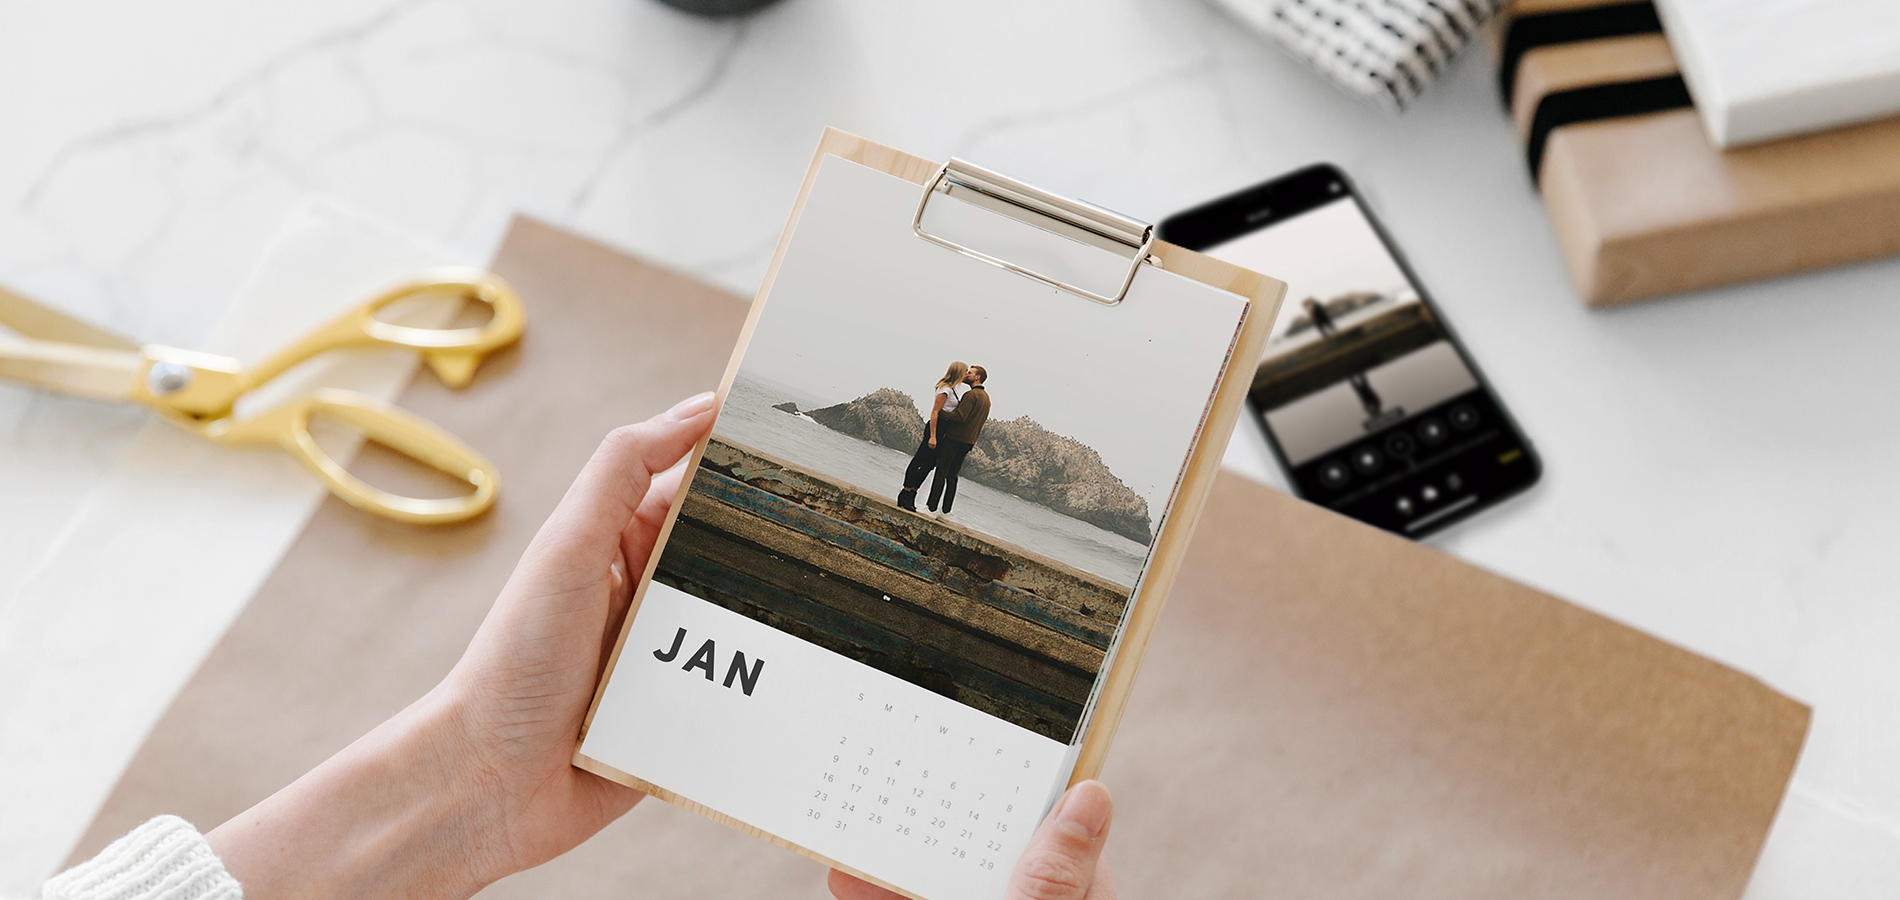 Hands holding photo calendar that is about to be gift wrapped